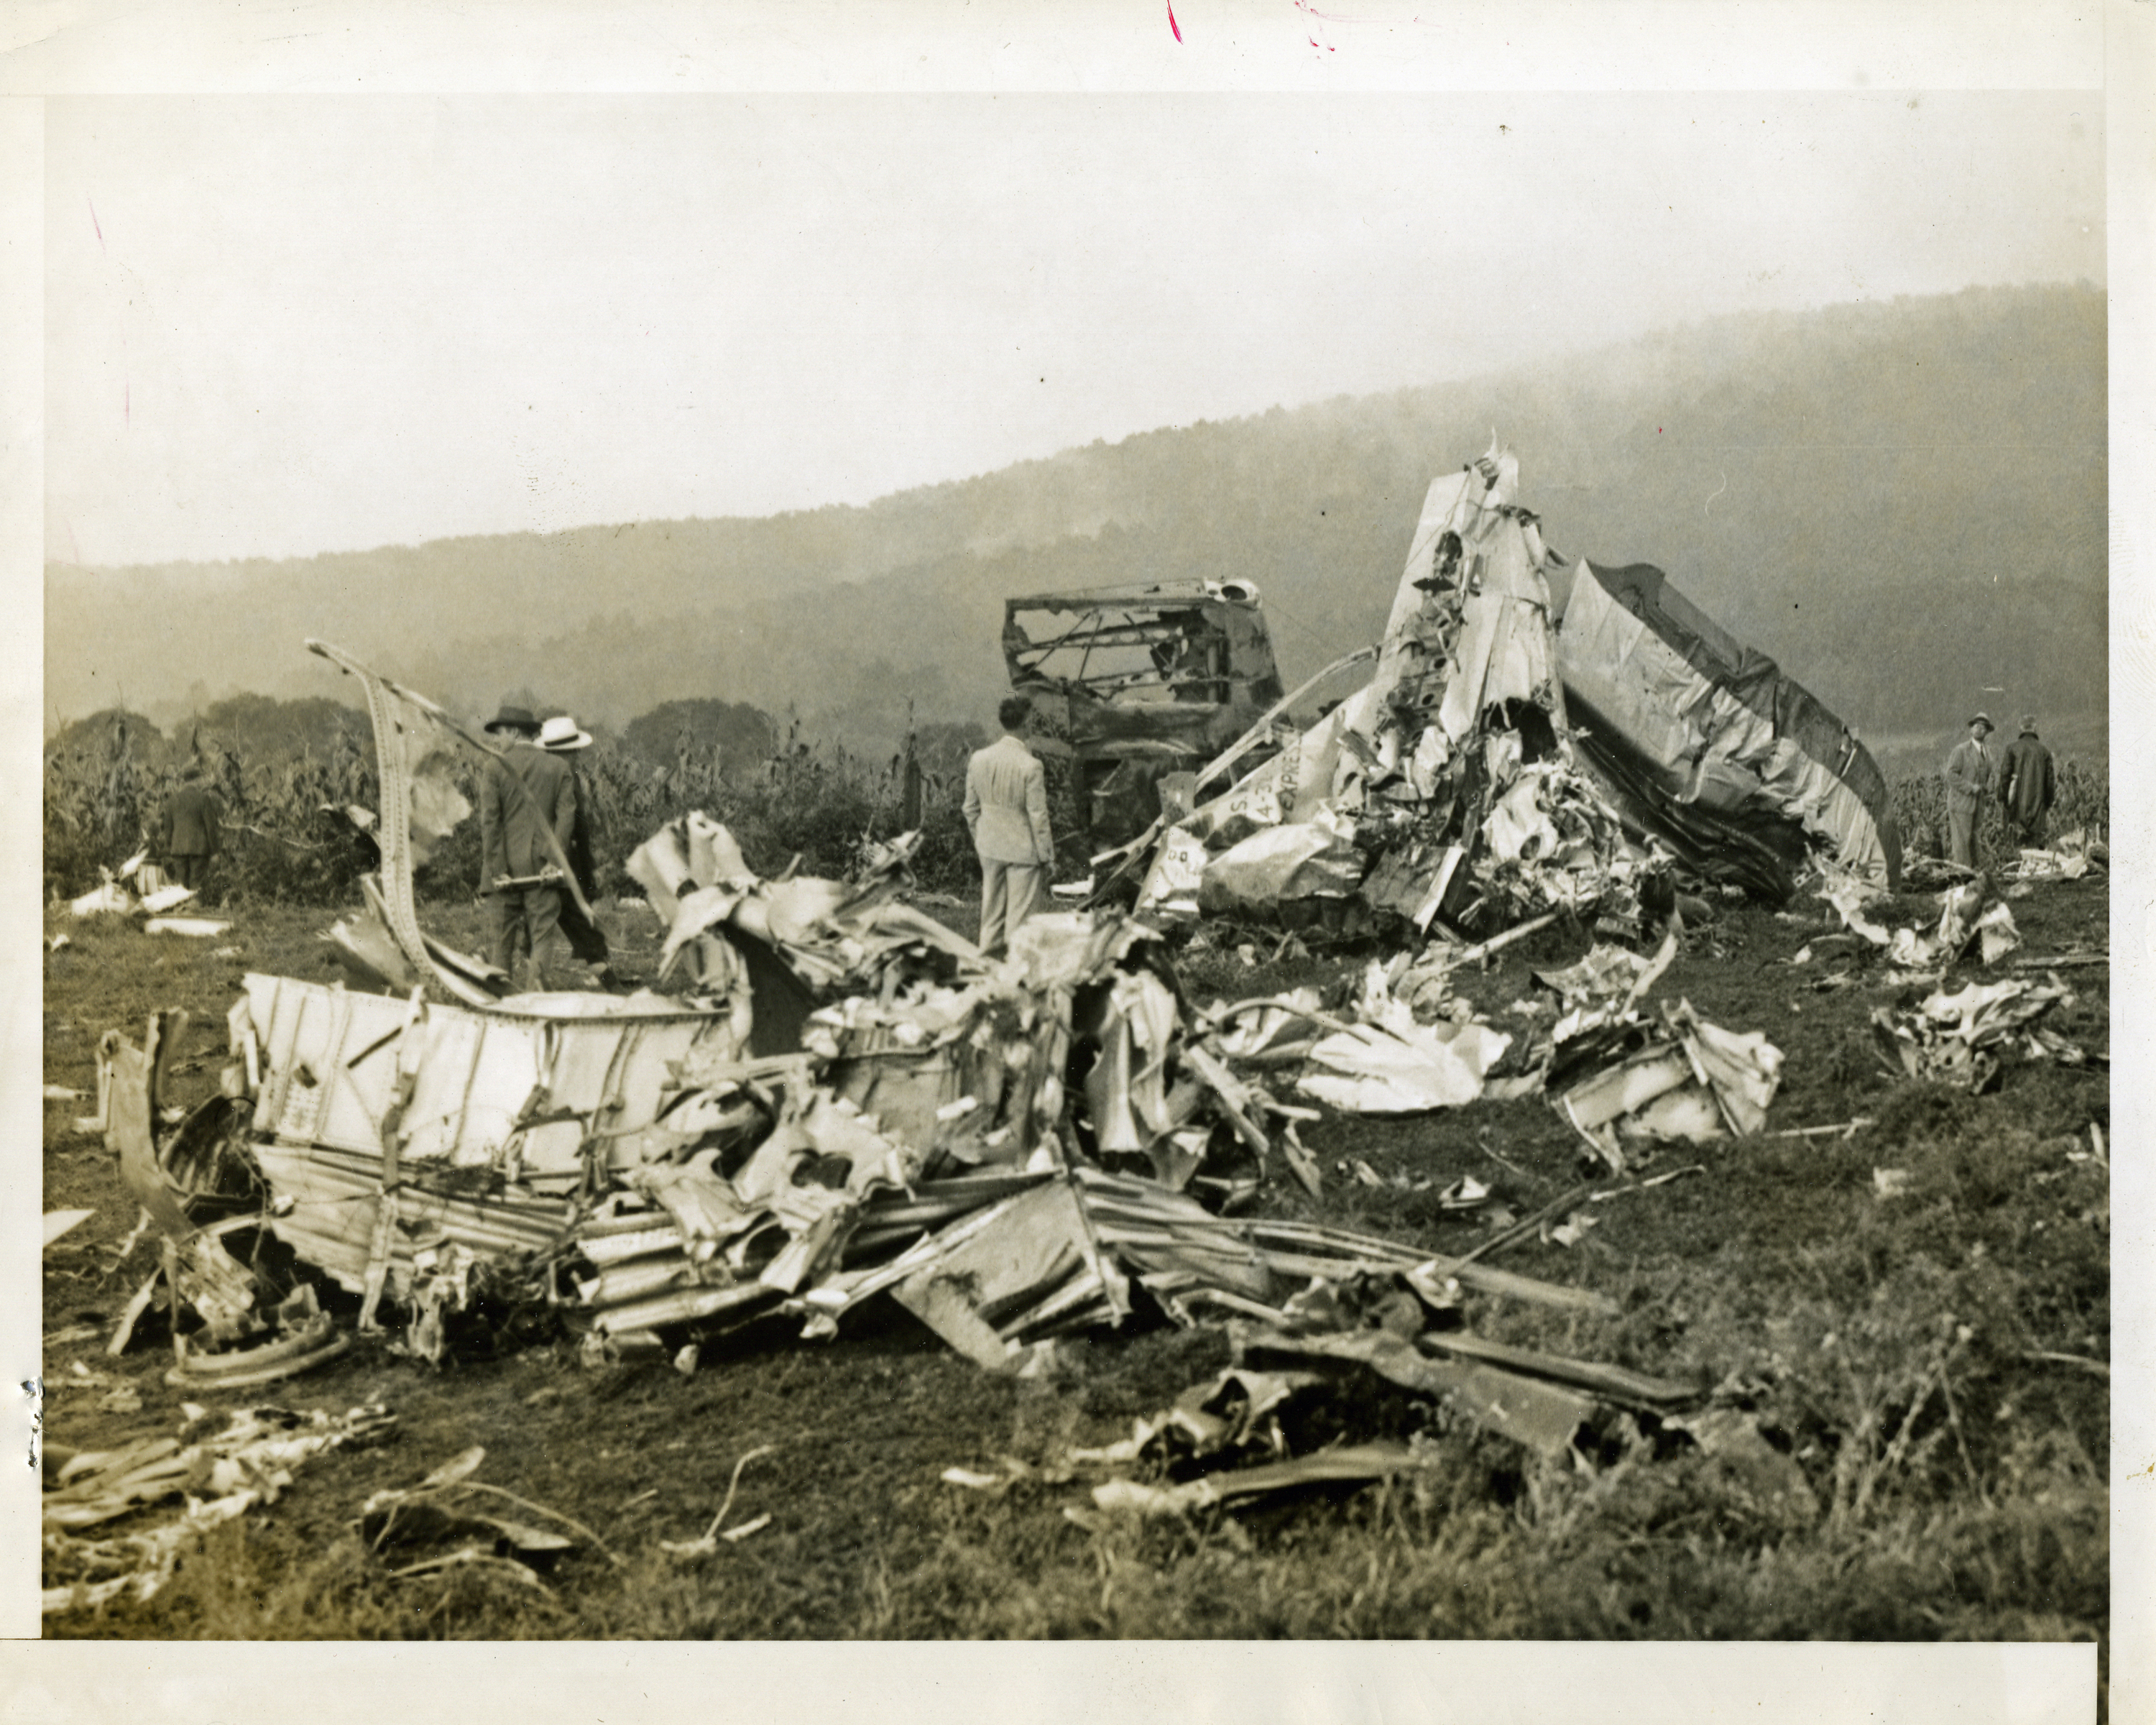 1940-lovettsville-air-disaster-international-news-photos-no-serial-number_front